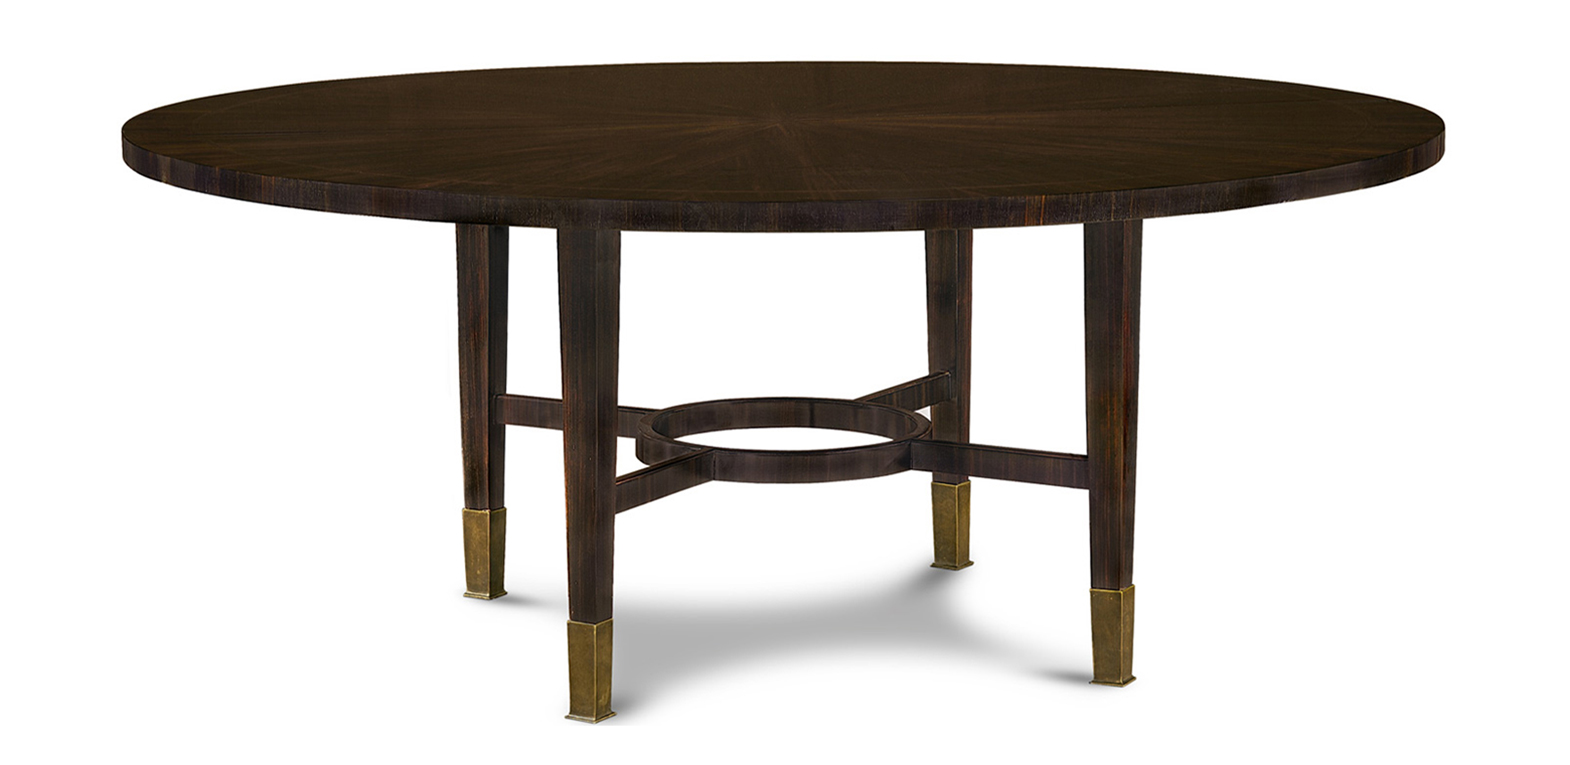 ARGUEIL DINING TABLE 180